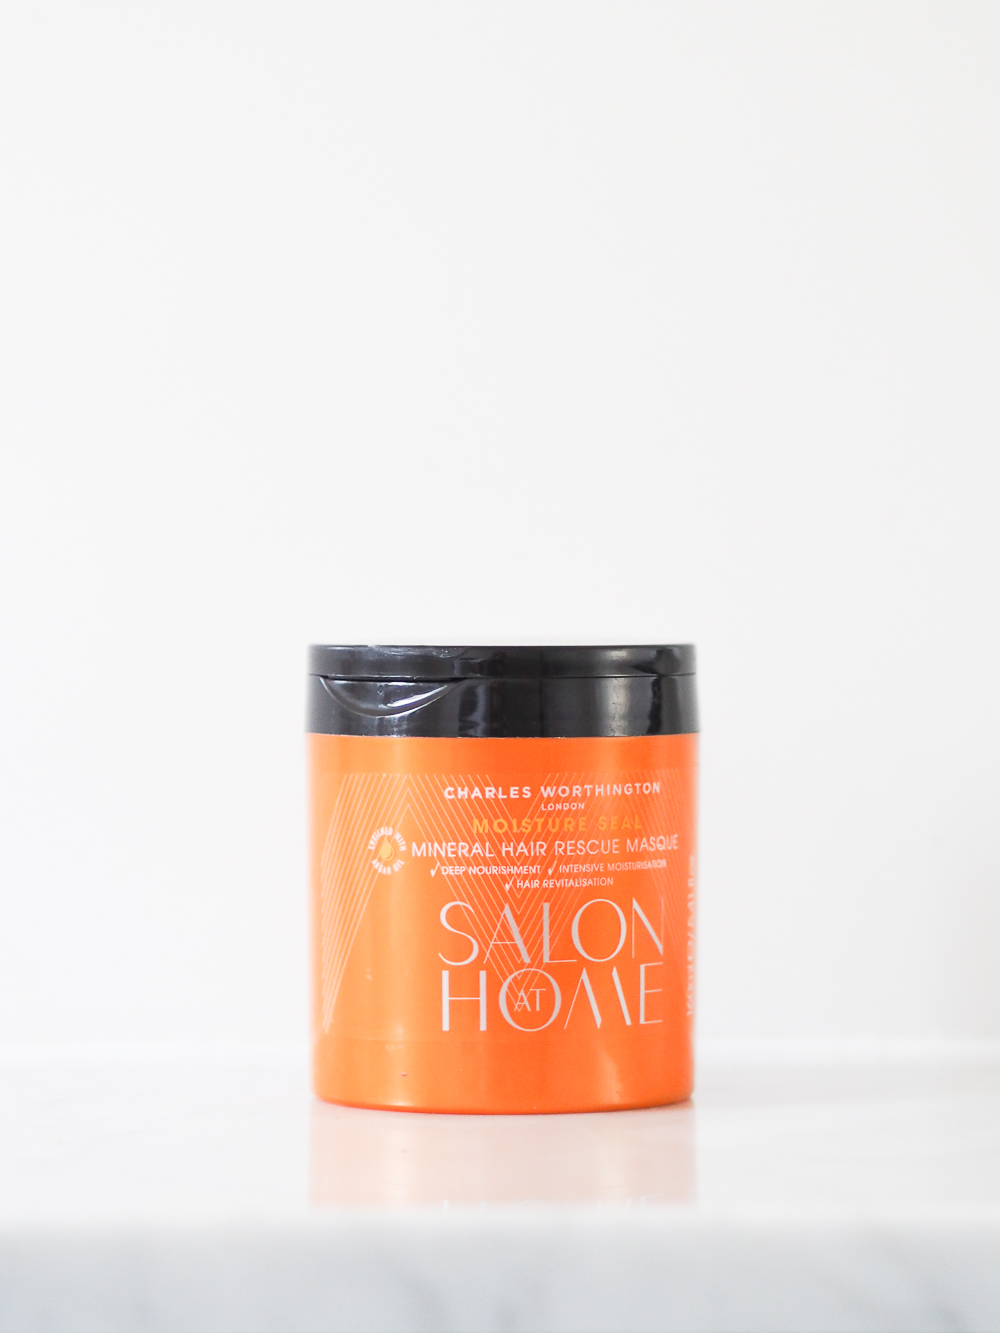 Charles Worthington Mineral Hair Rescue Masque review | Design Hunter